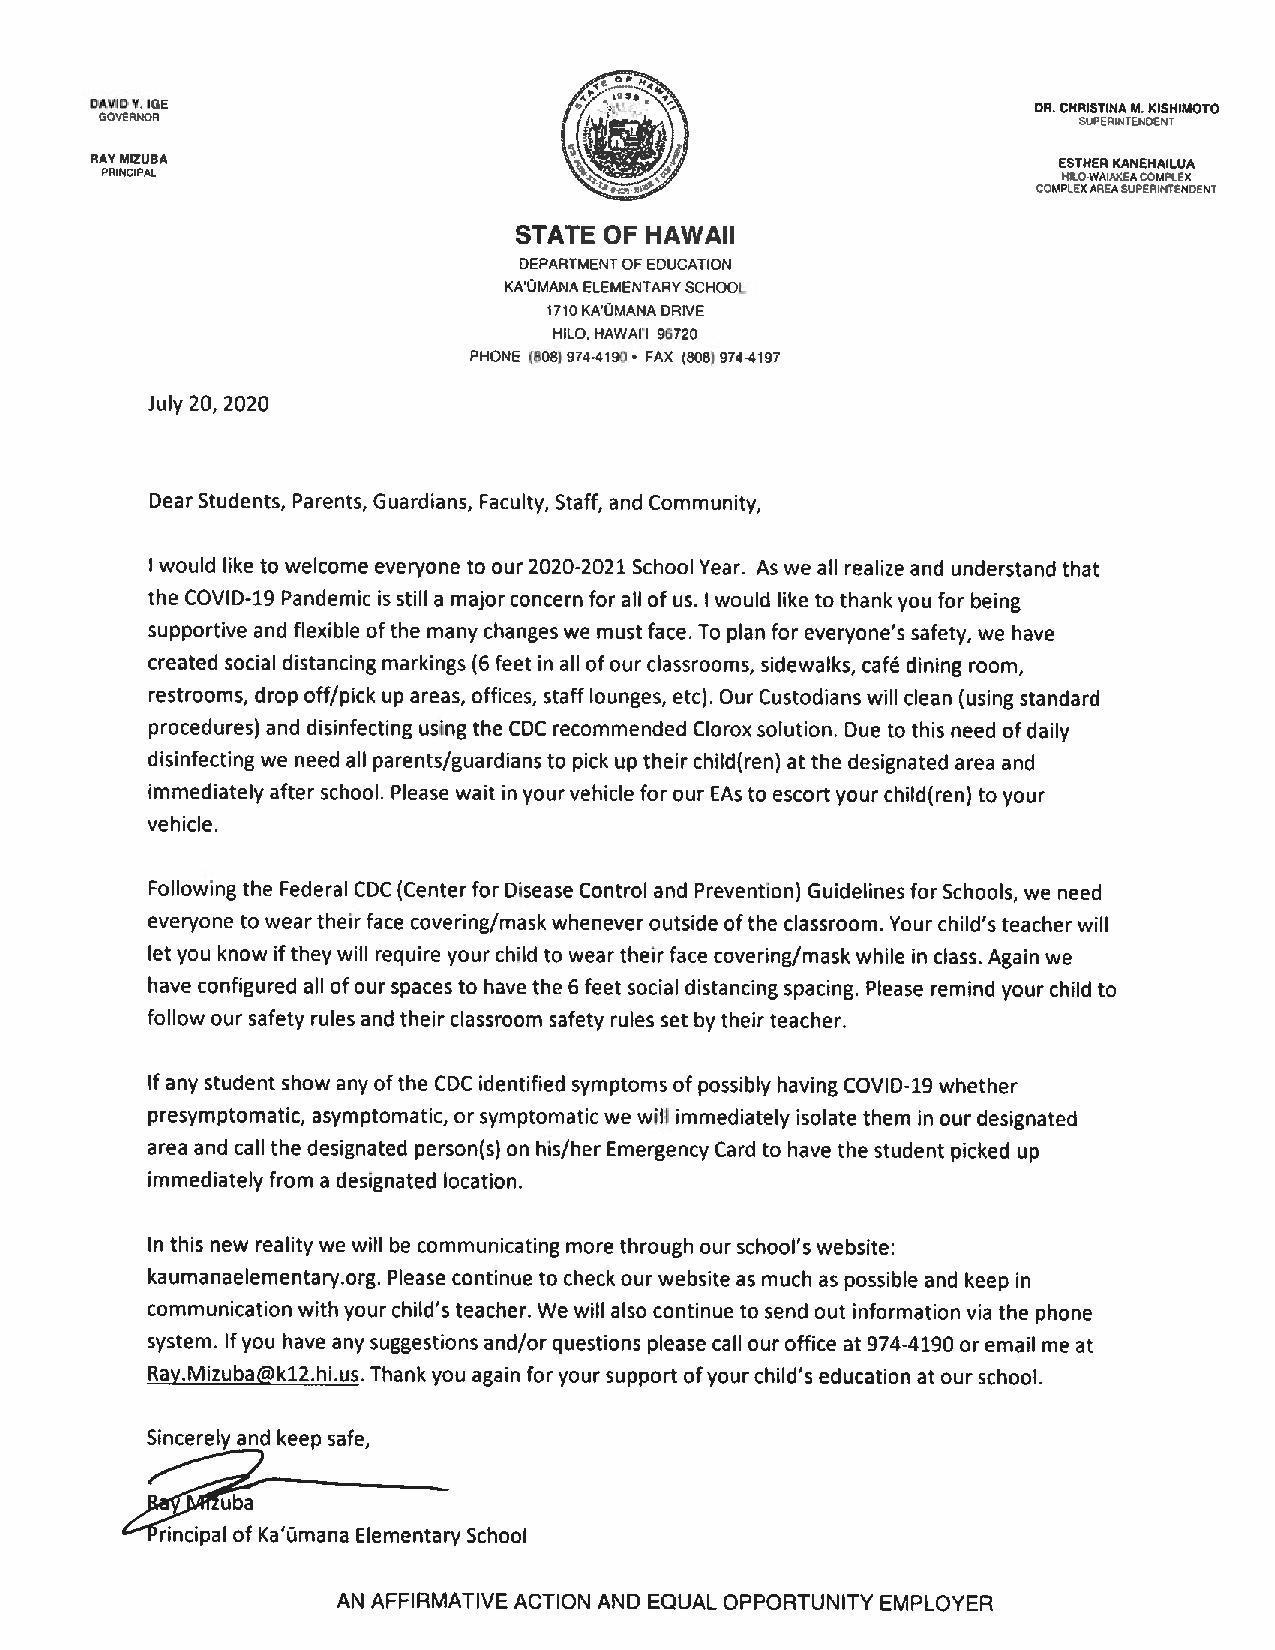 Letter from Principal - July 20, 2020 - Welcome to 2020-2021 School Year-page-001